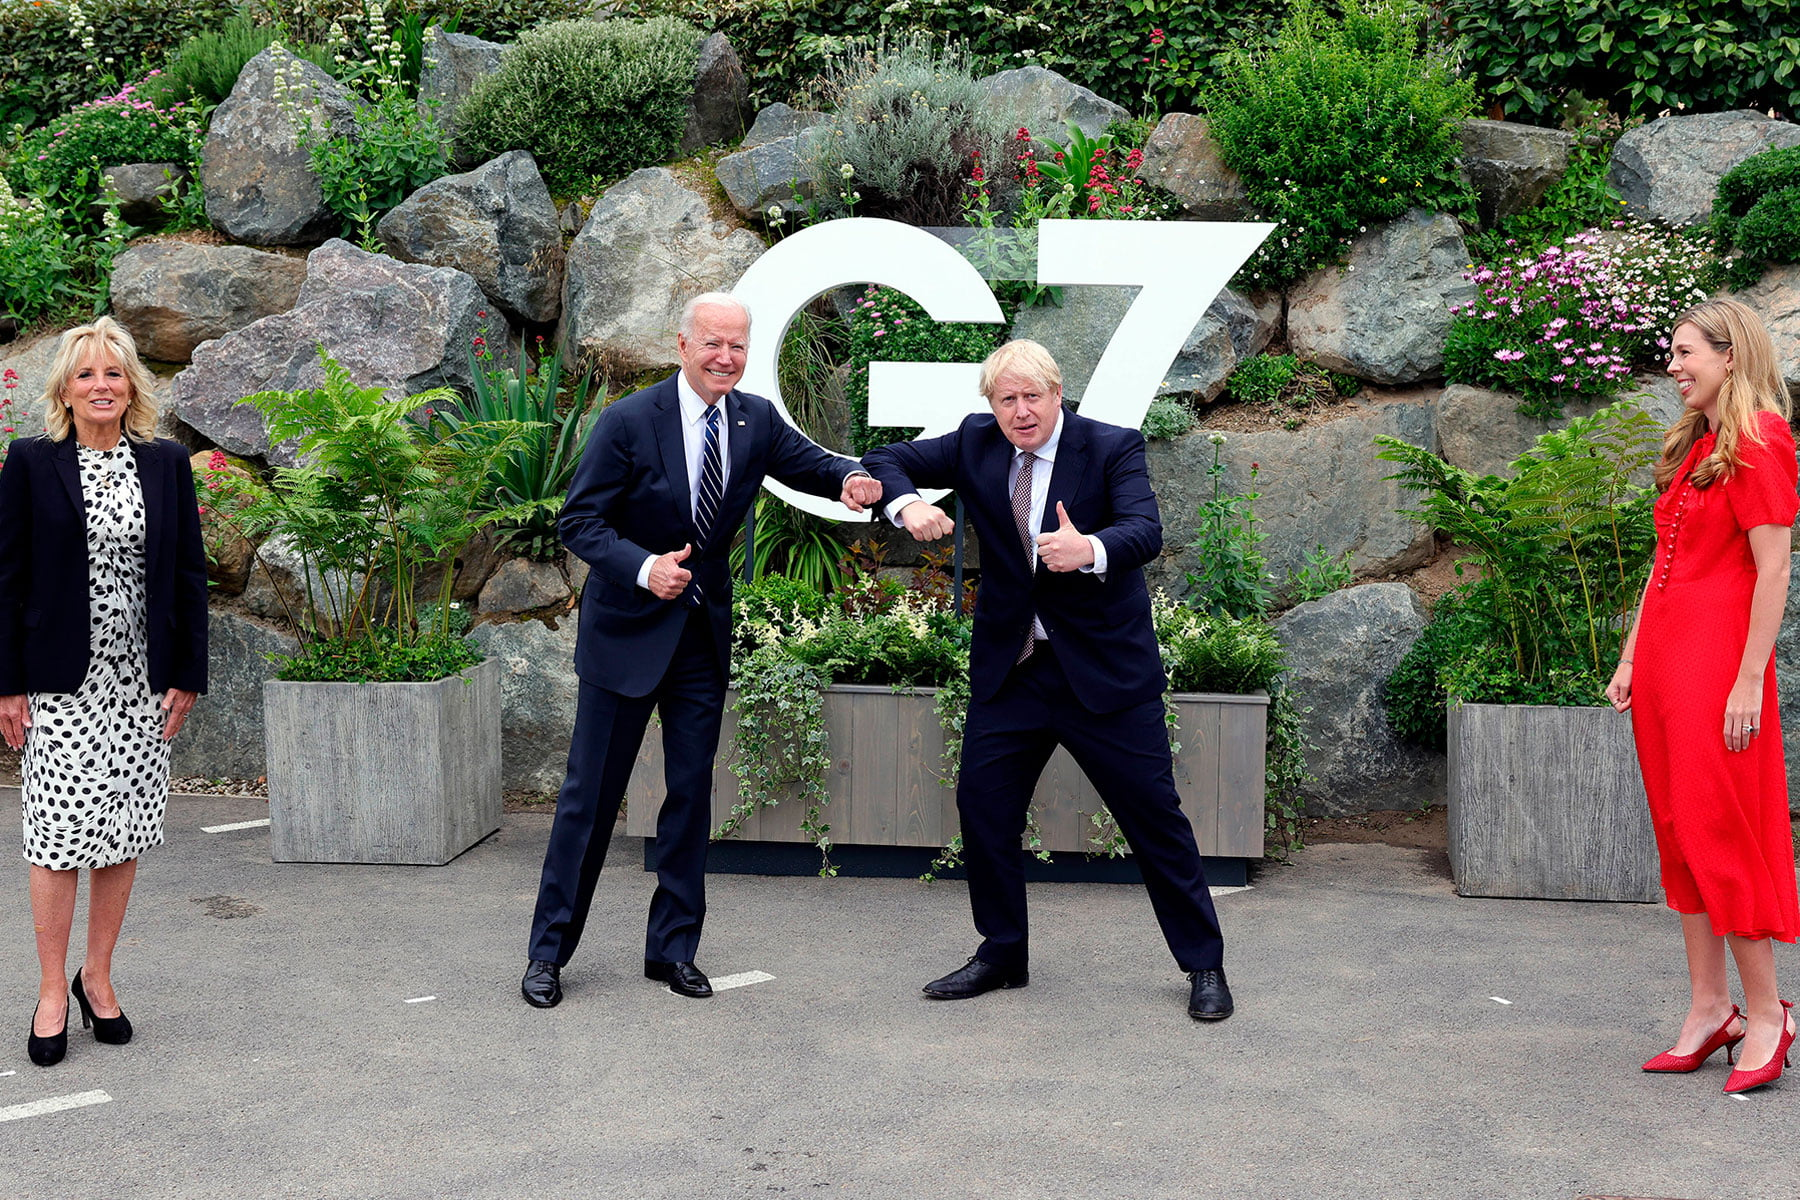 How photos from the G7 summit show the glaring gender authority gap